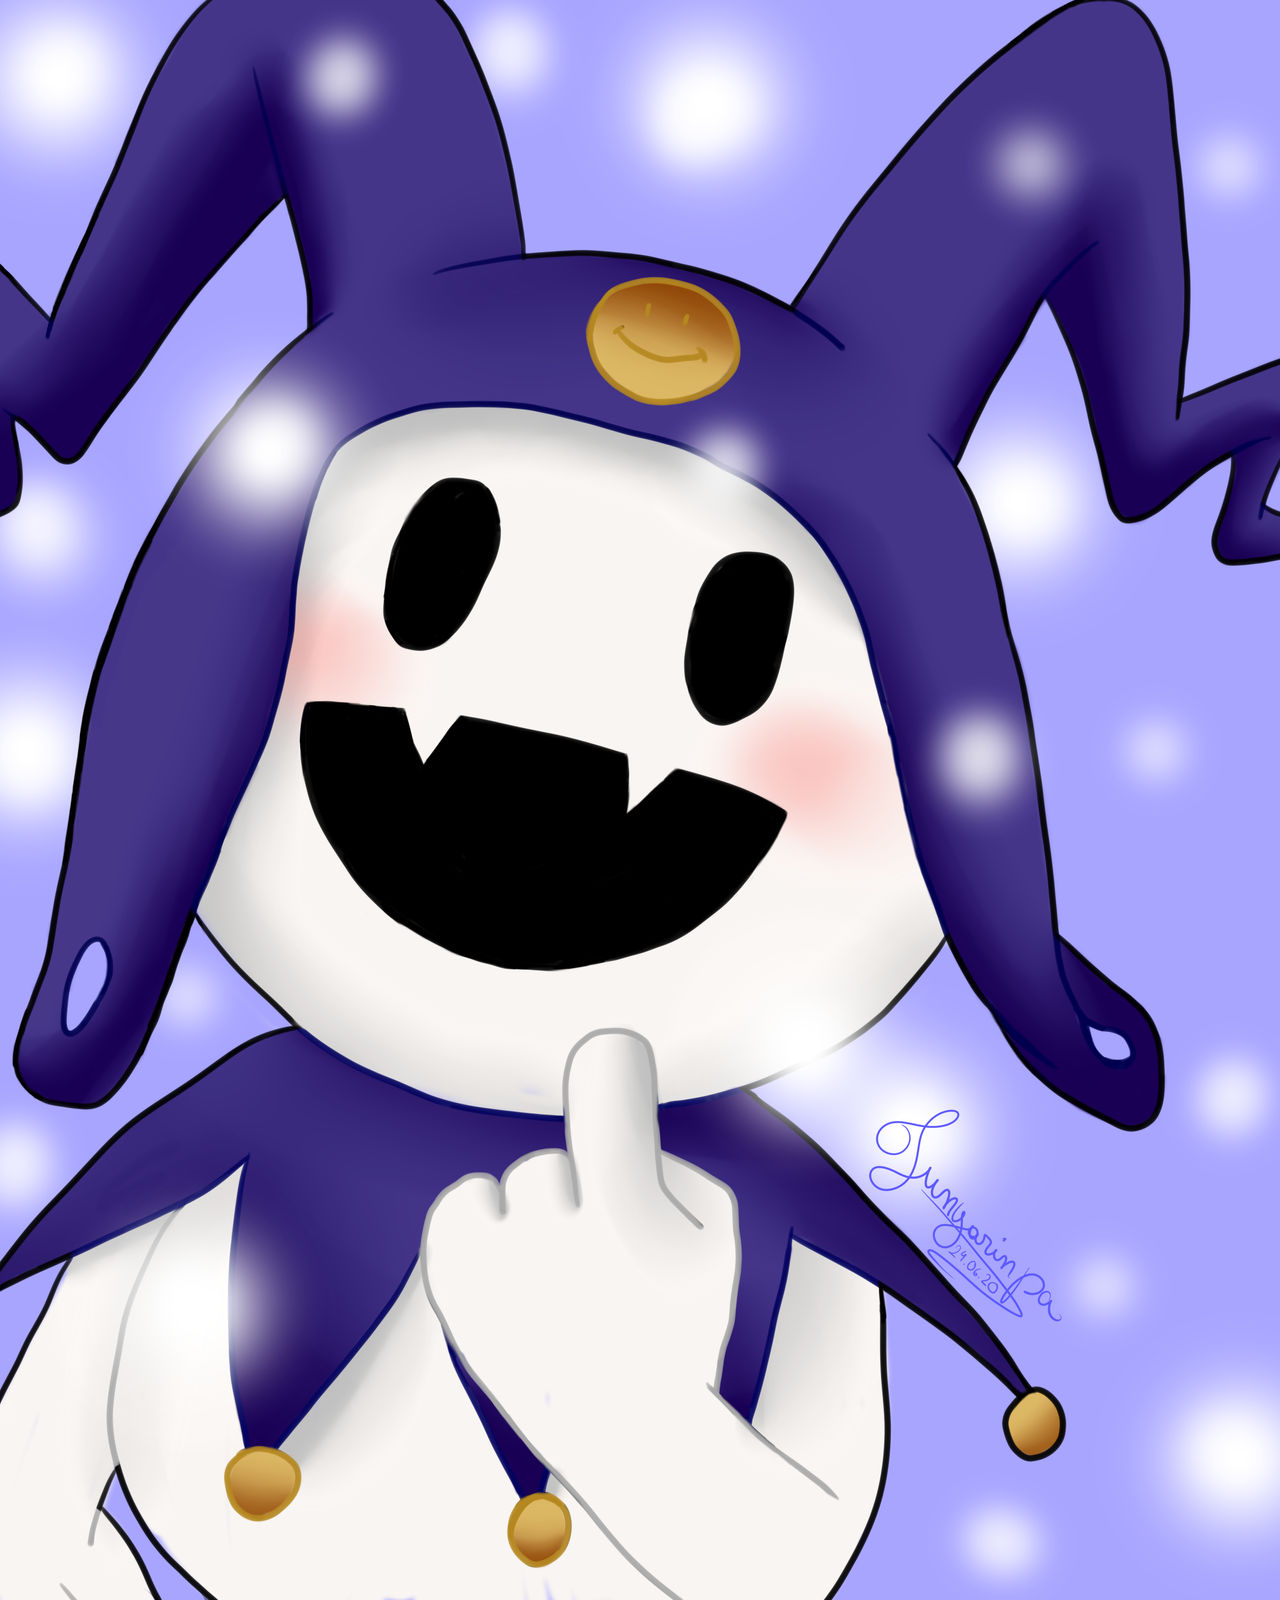 Jack Frost From Shin Megami Tensei Series By Julhama On Deviantart